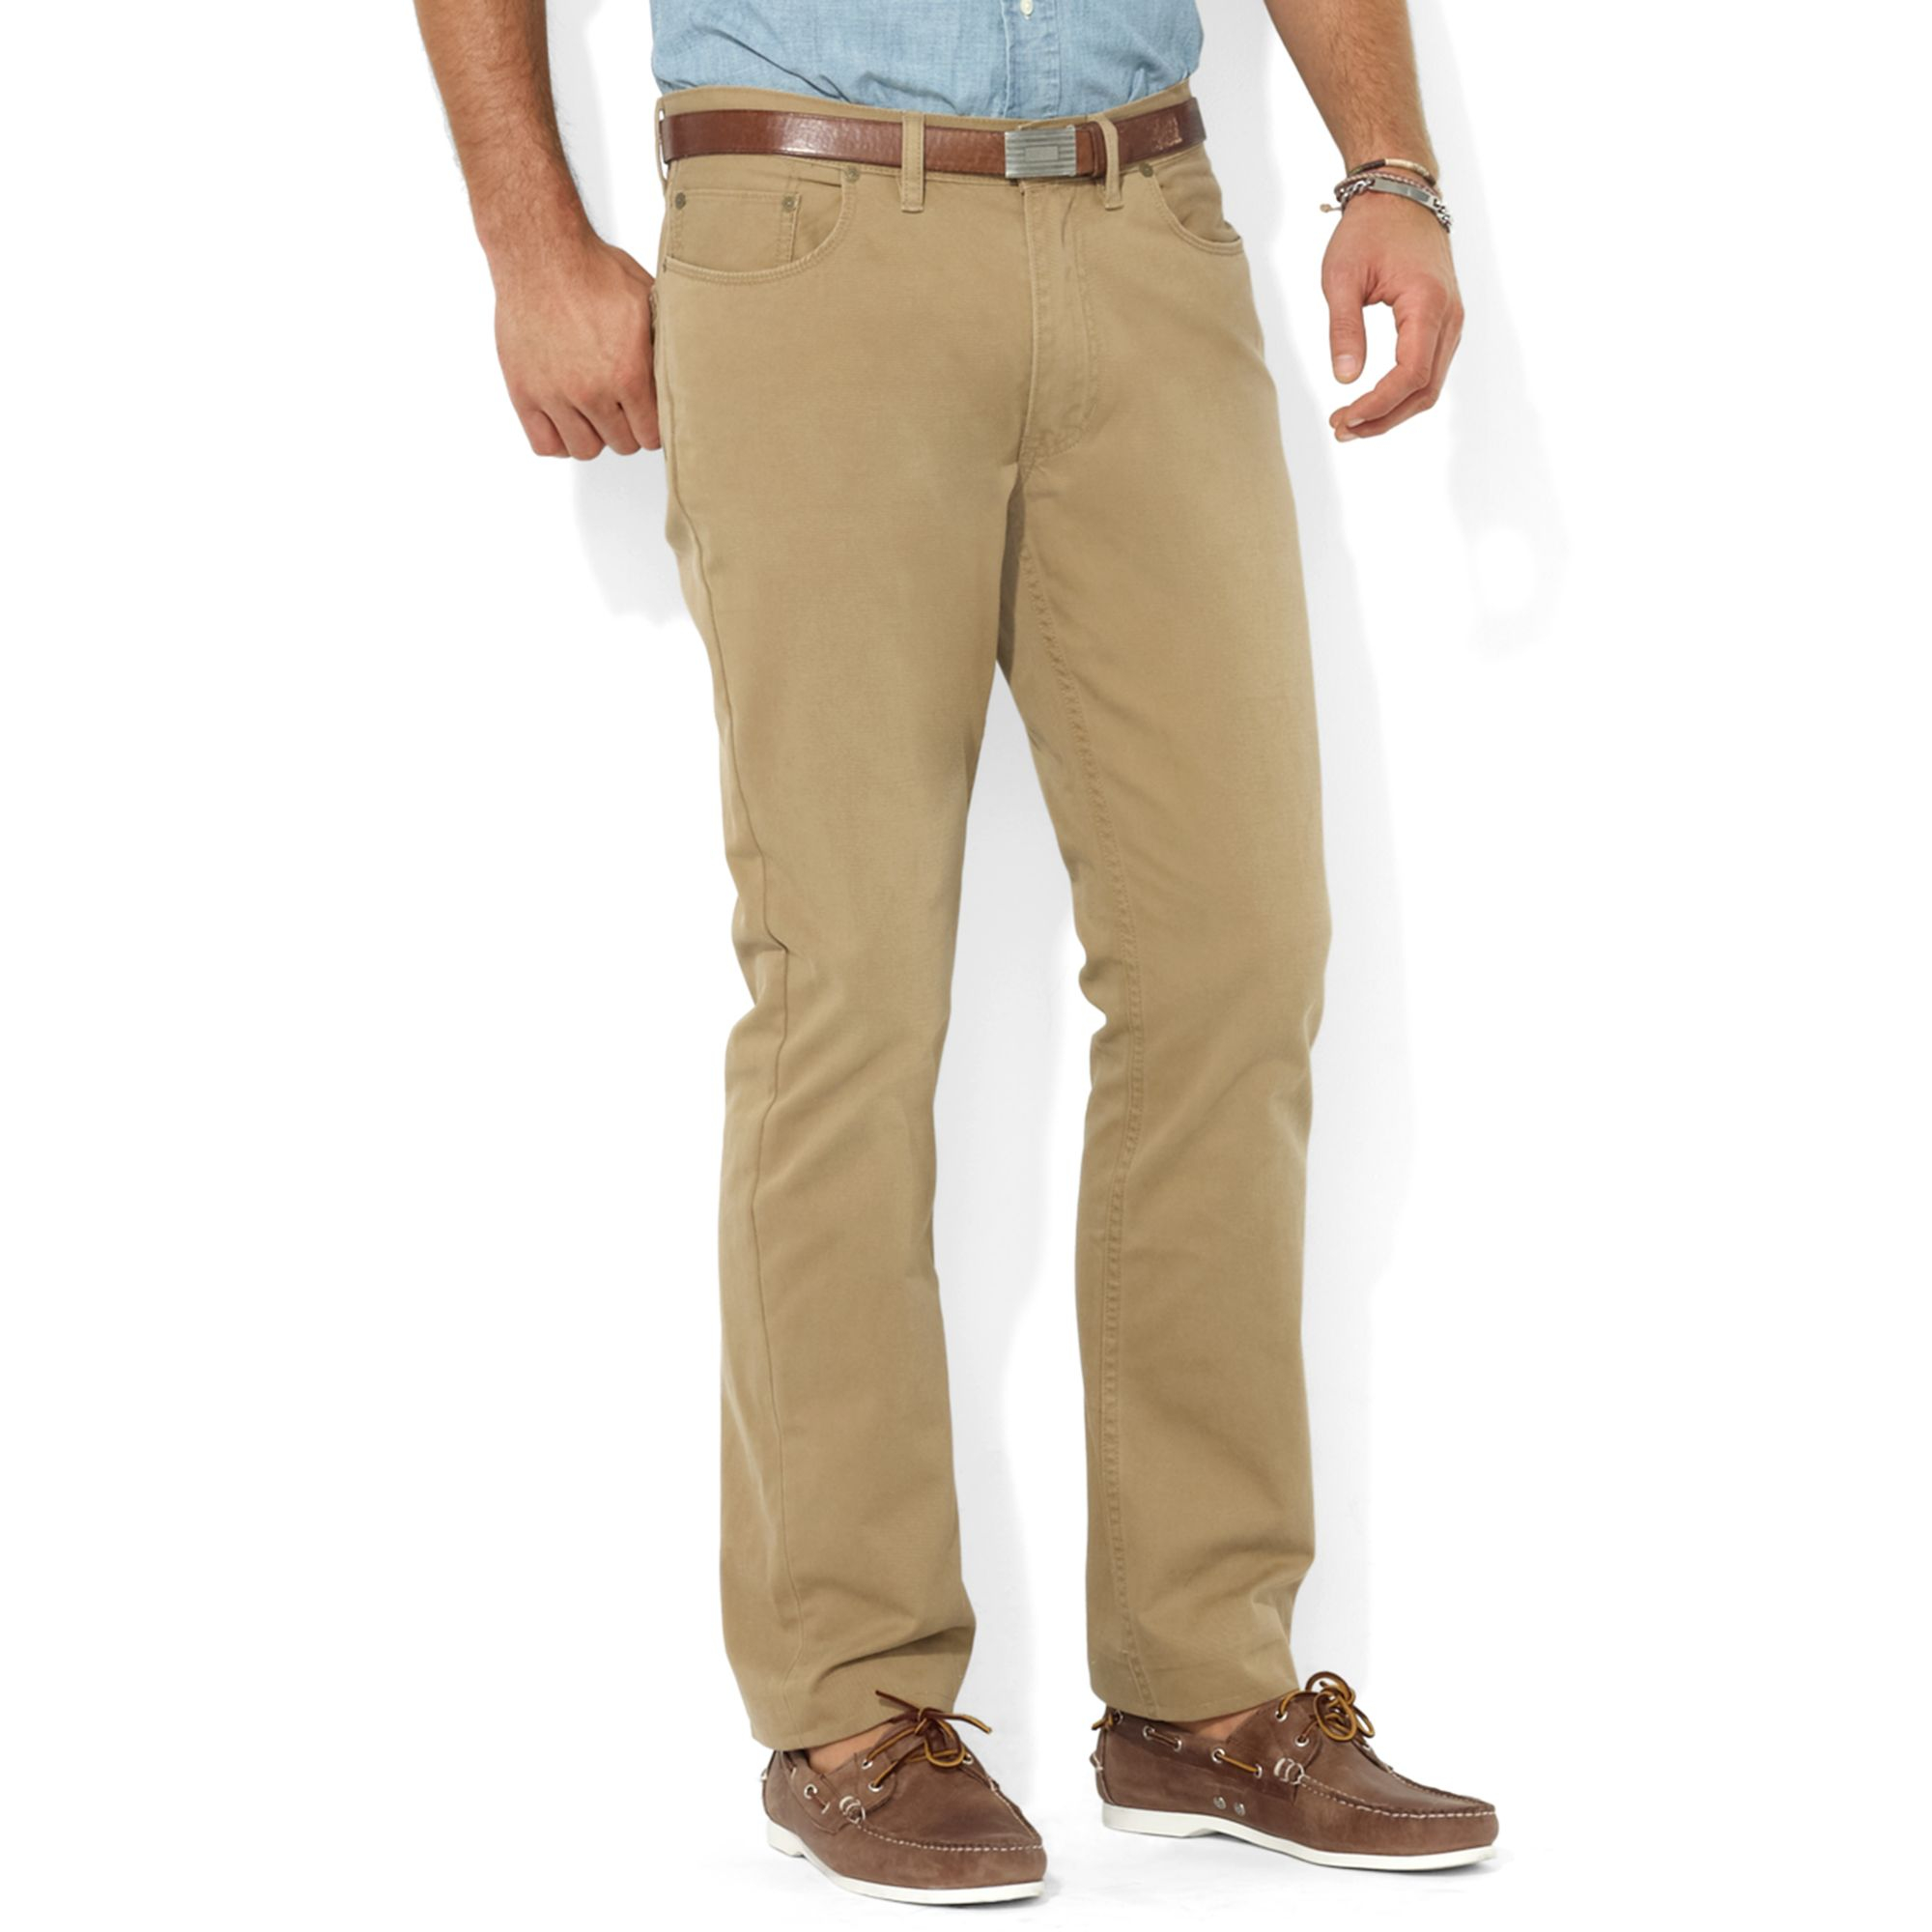 0c17ae25ede2 ... men sport suit jacketpants. cdc50 0f738  order lyst ralph lauren polo  classicfit flatfront chino pants in natural a0ea0 caf07